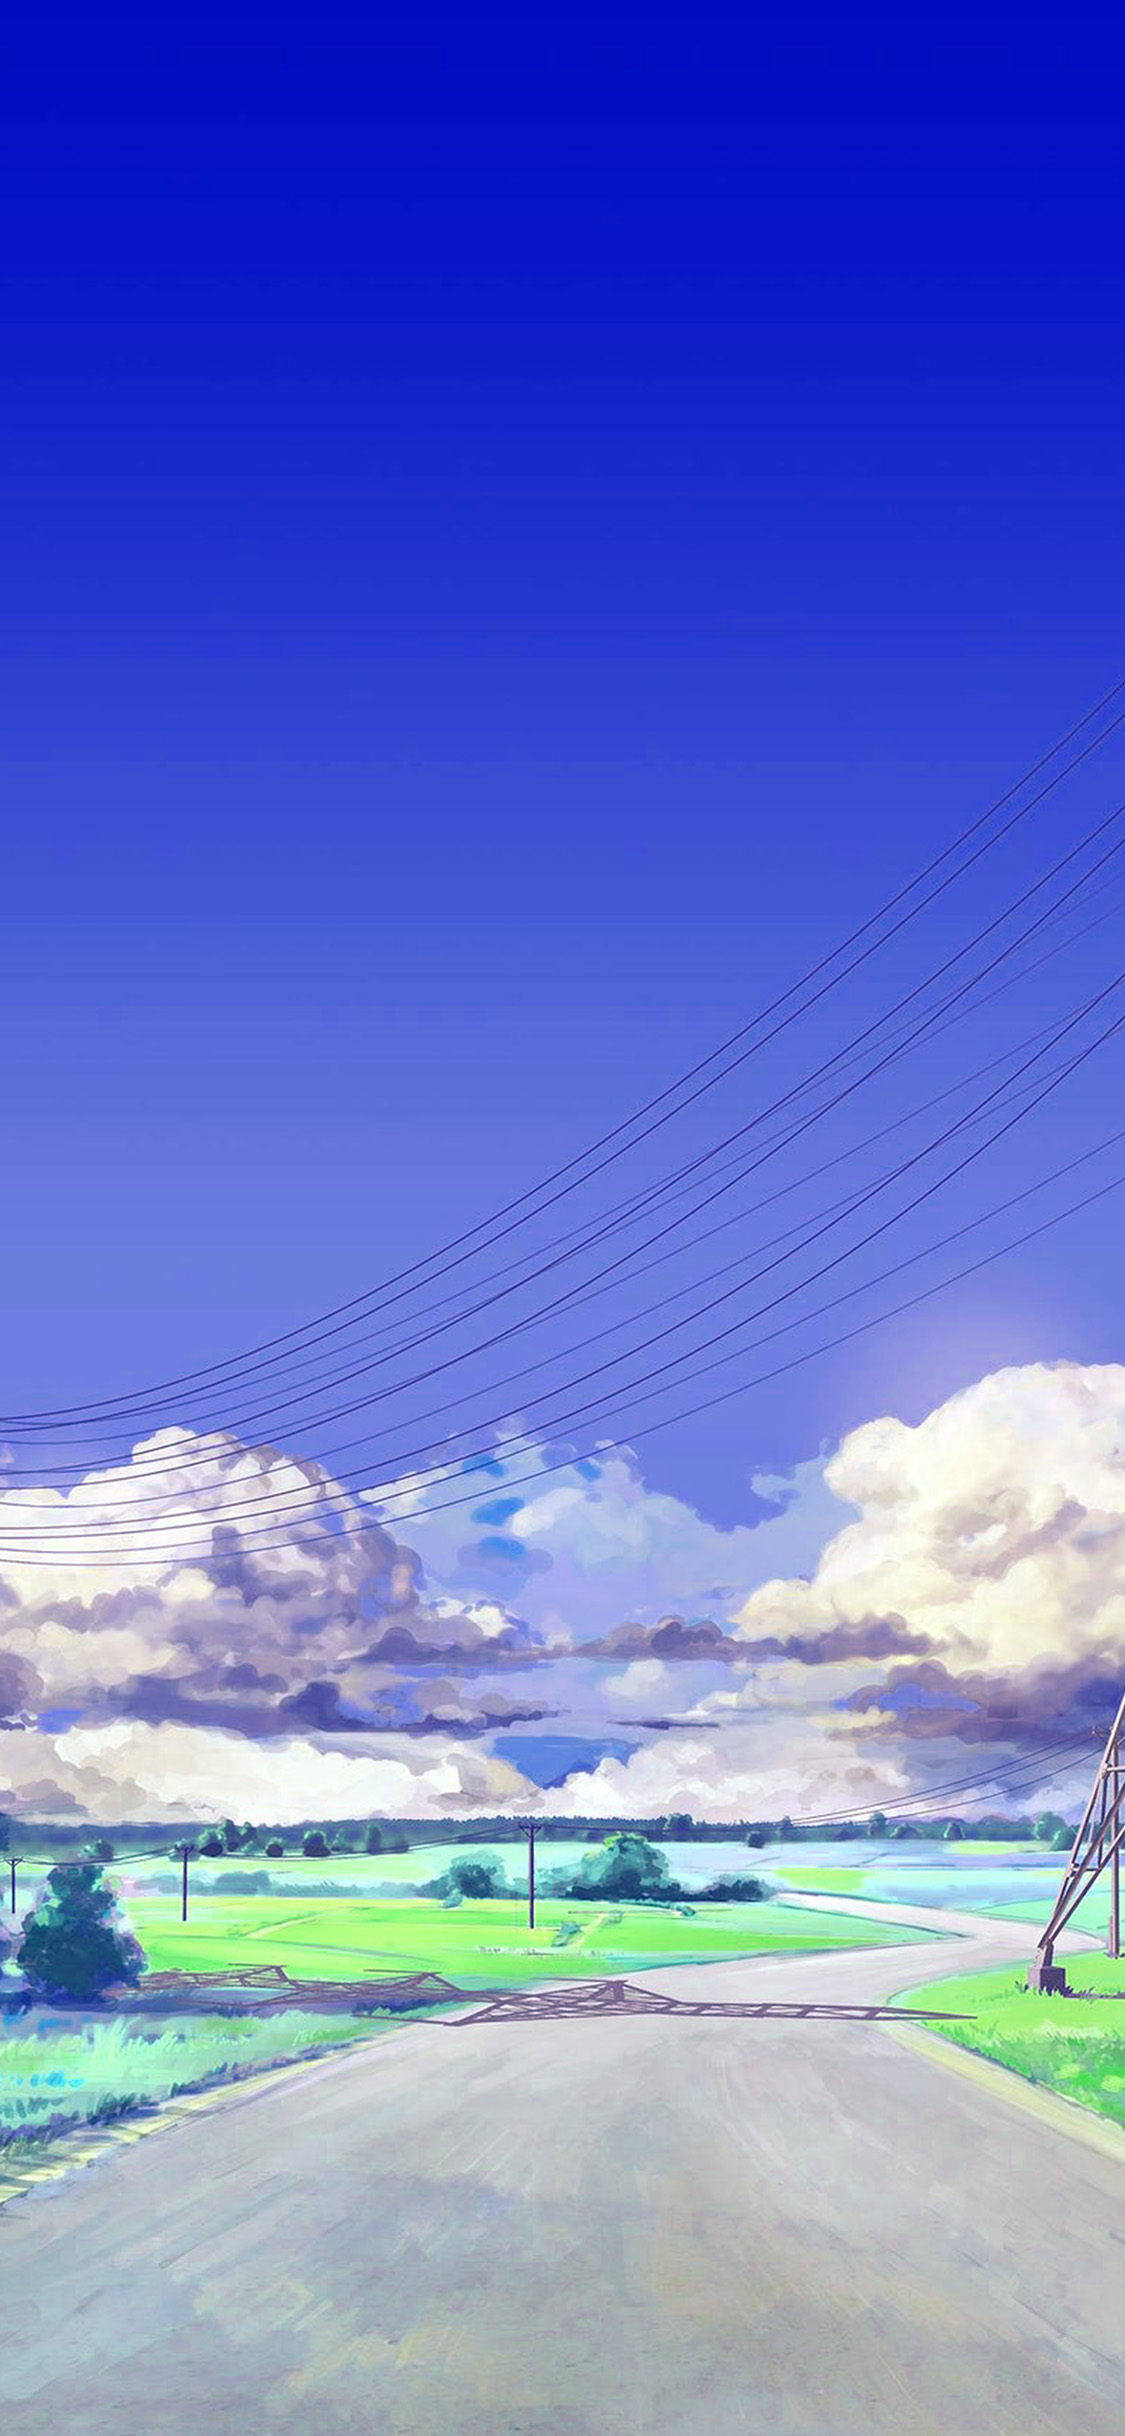 Bc41 Sunny Sky Arsenic Art Illustration Wallpaper